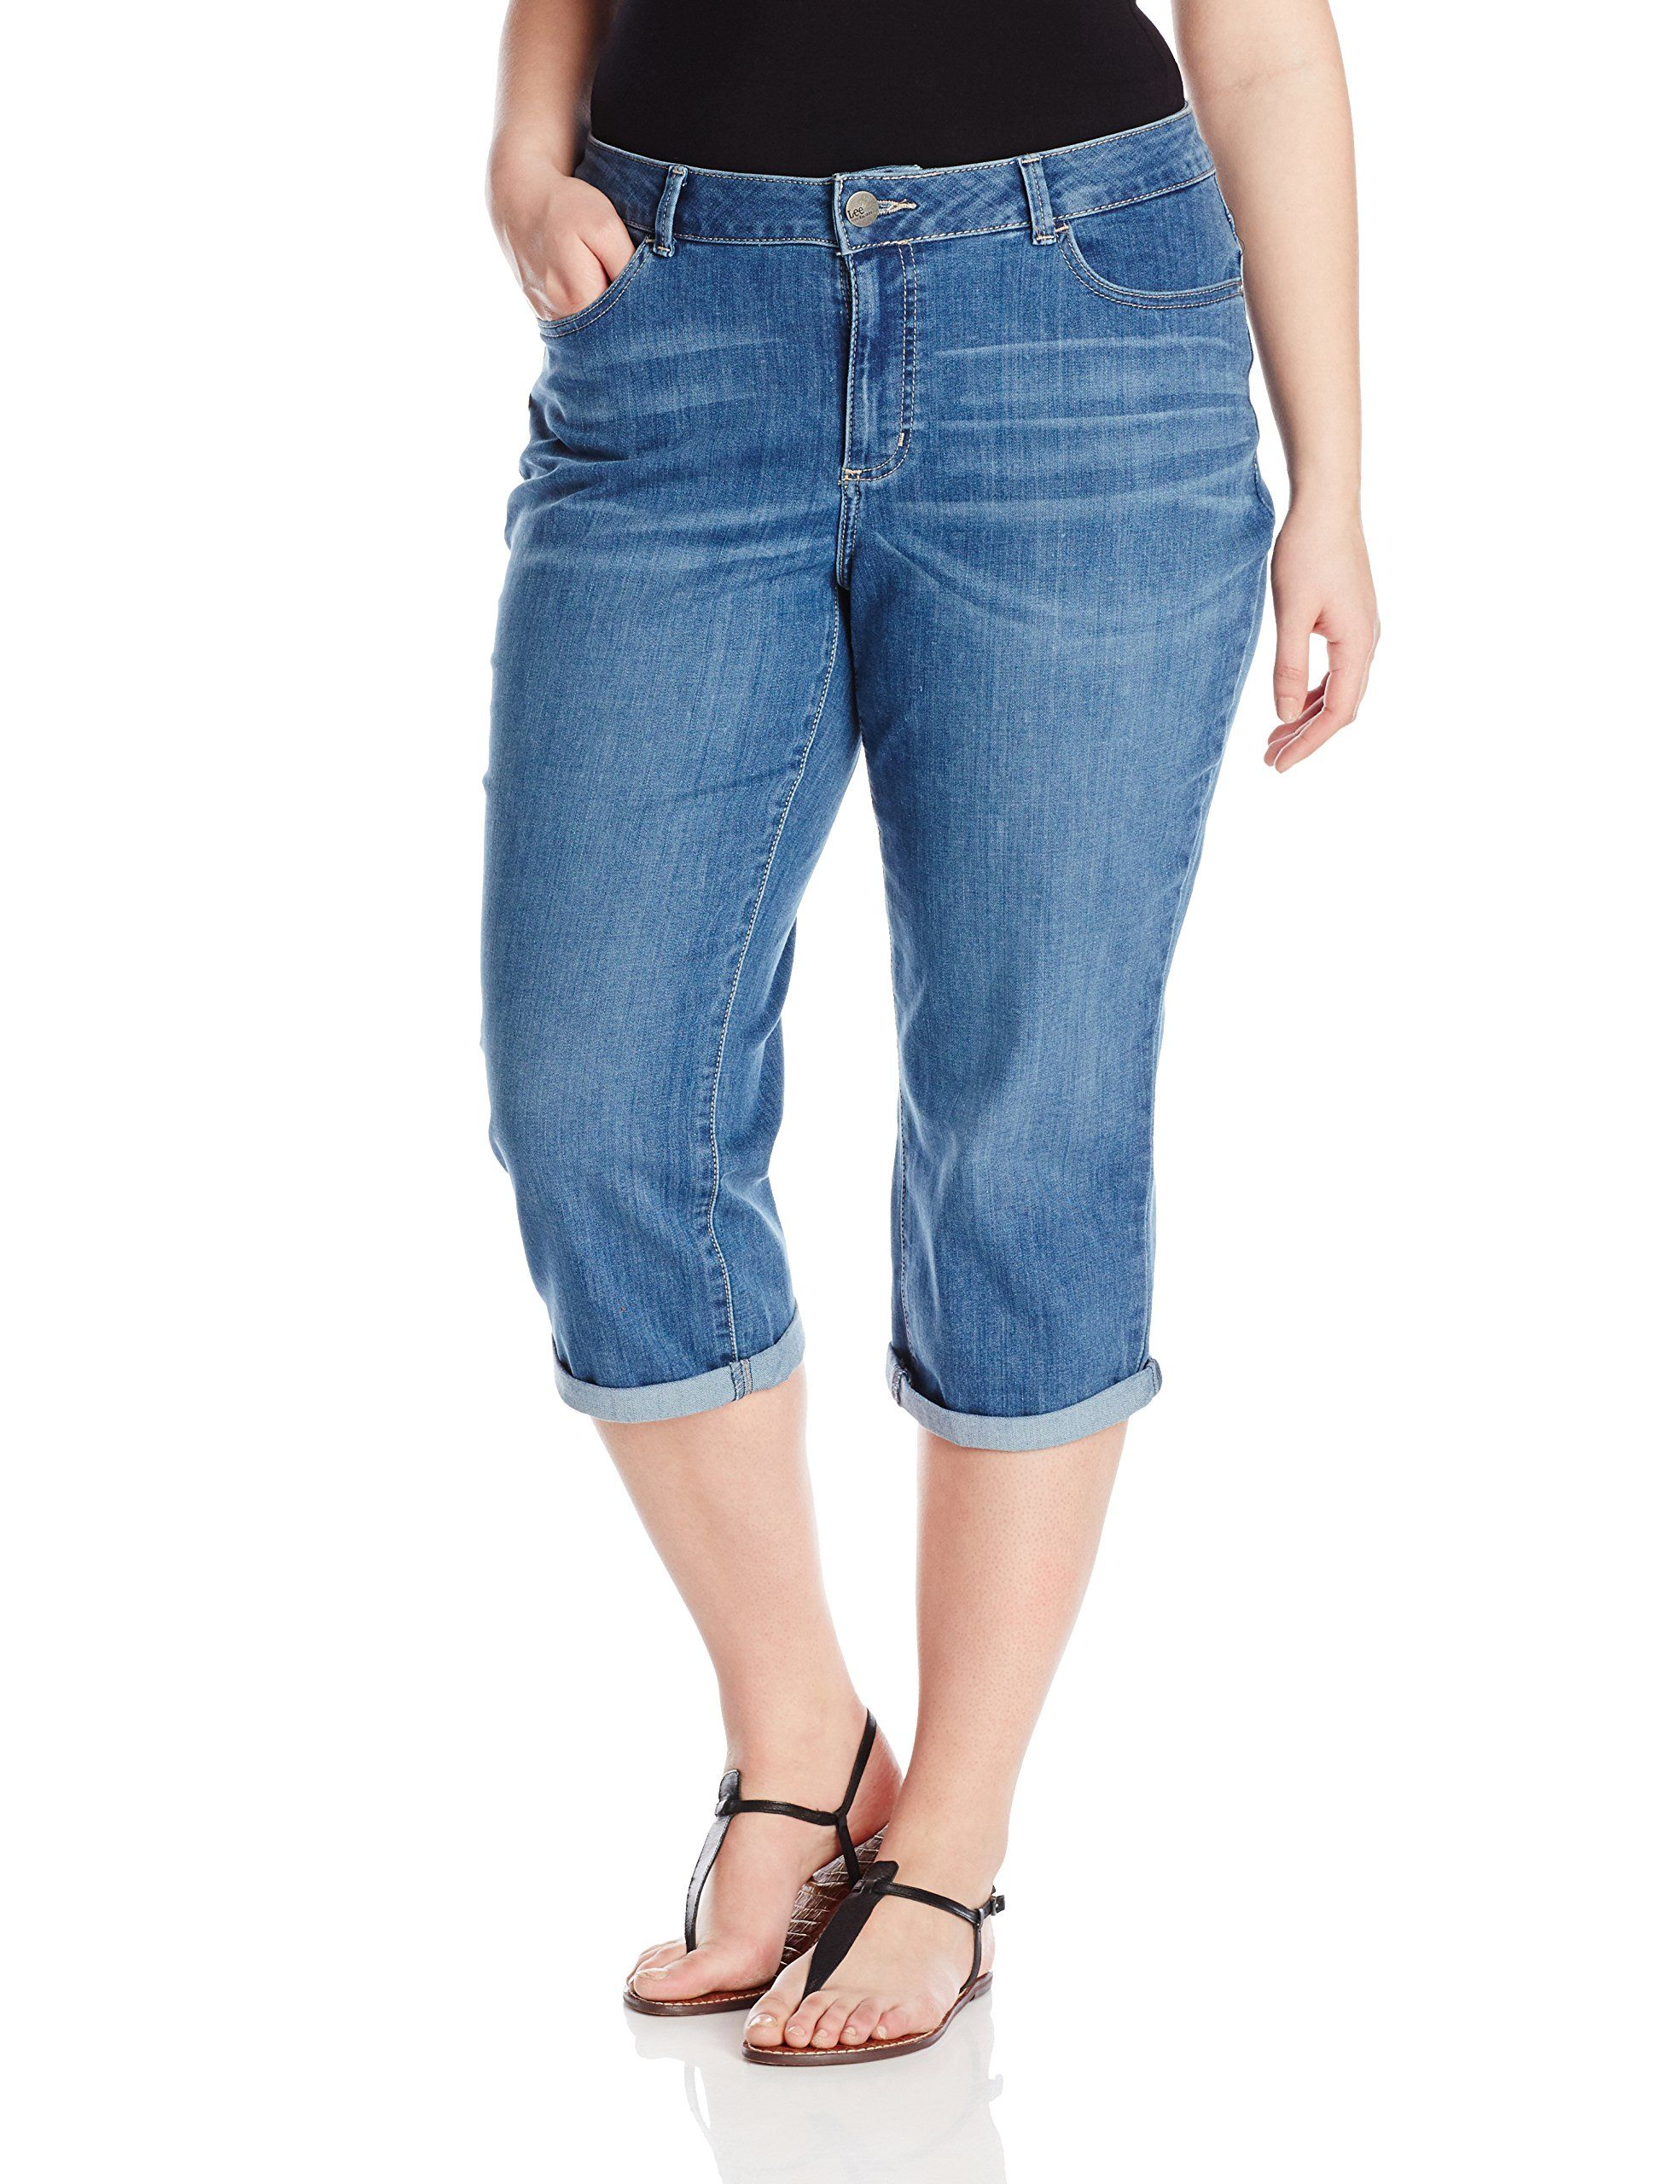 Plus size clothing spring trends denim our top picks for